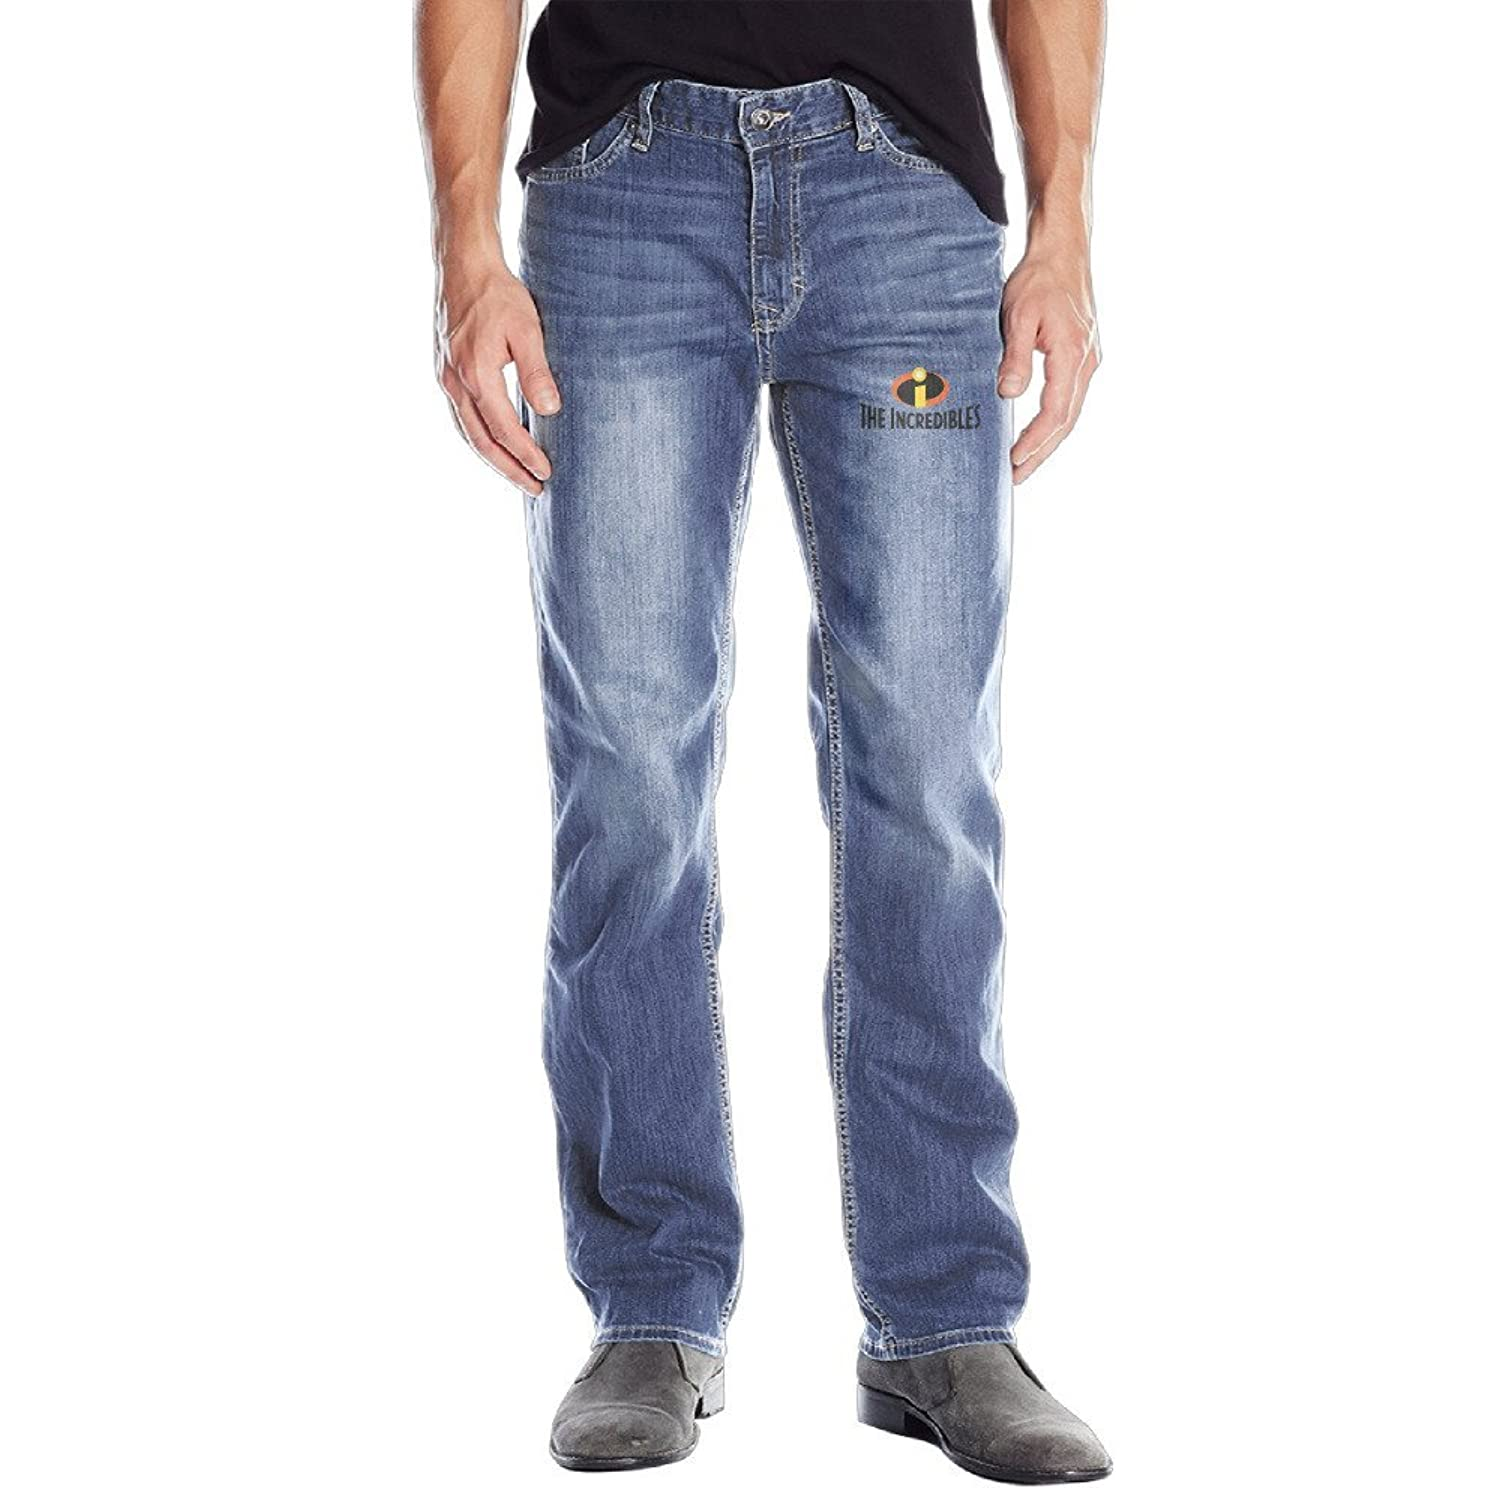 8d82e35096f good The Incredibles Mans Skinny Jeans - majesticpeopleinfotech.com